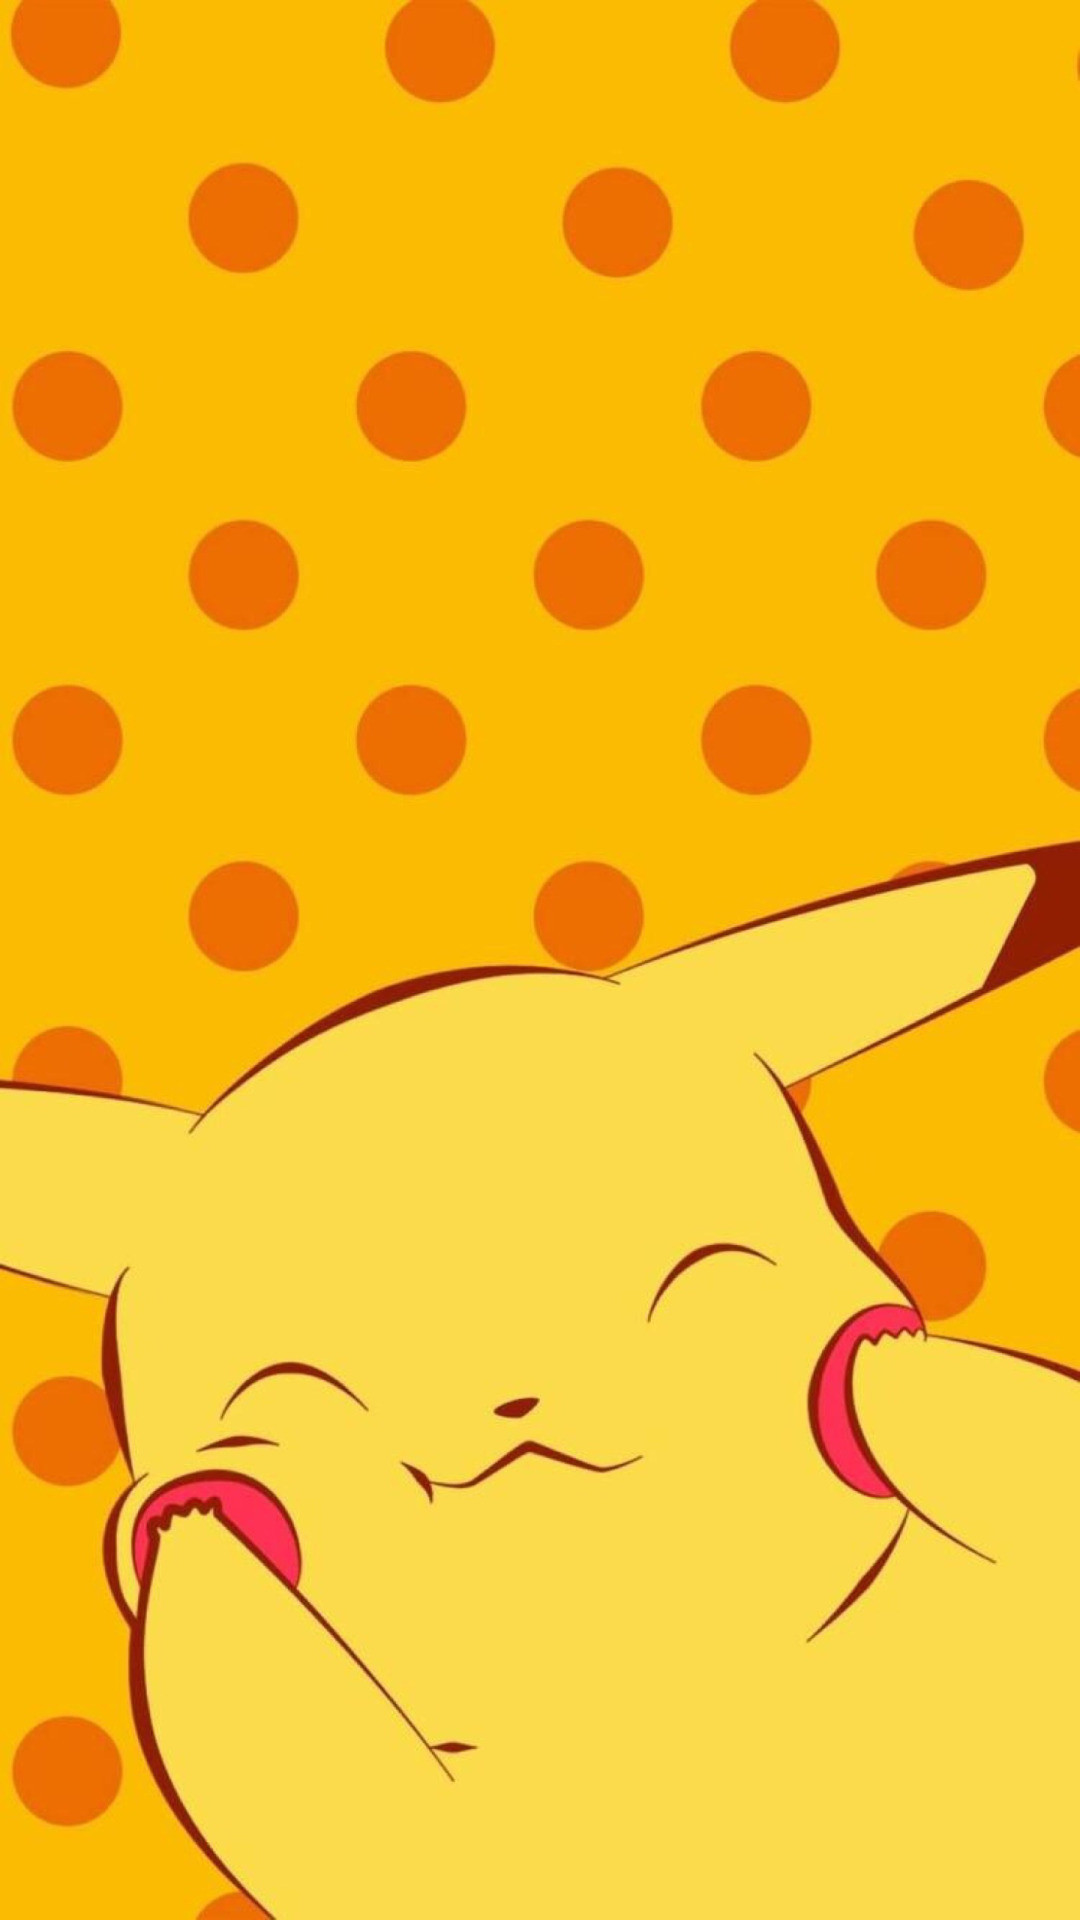 Pikachu Iphone Wallpaper 84 Images